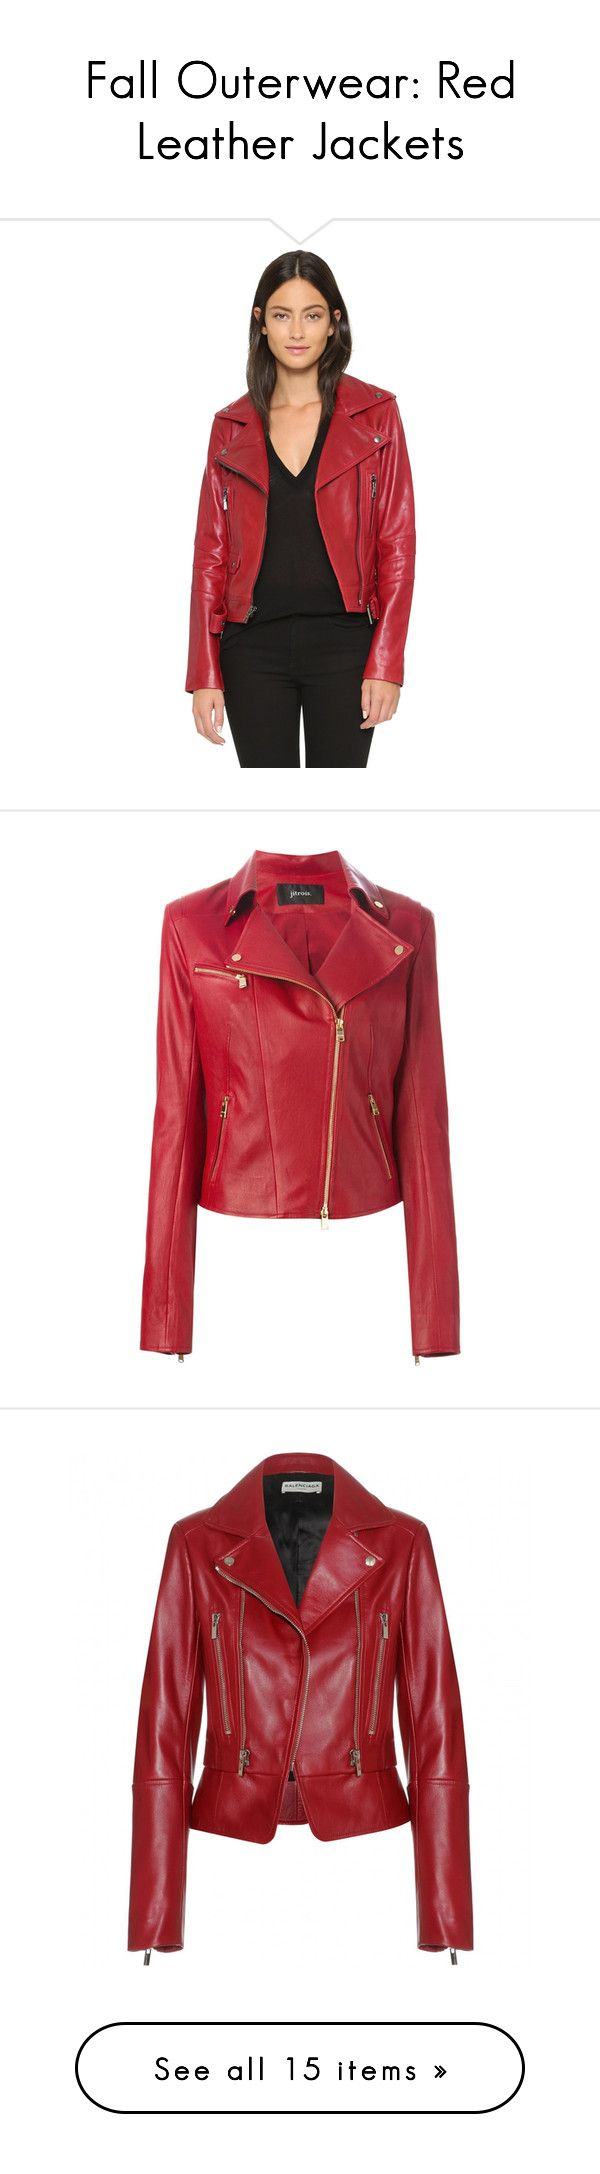 Leather jacket olx -  Fall Outerwear Red Leather Jackets By Polyvore Editorial Liked On Polyvore